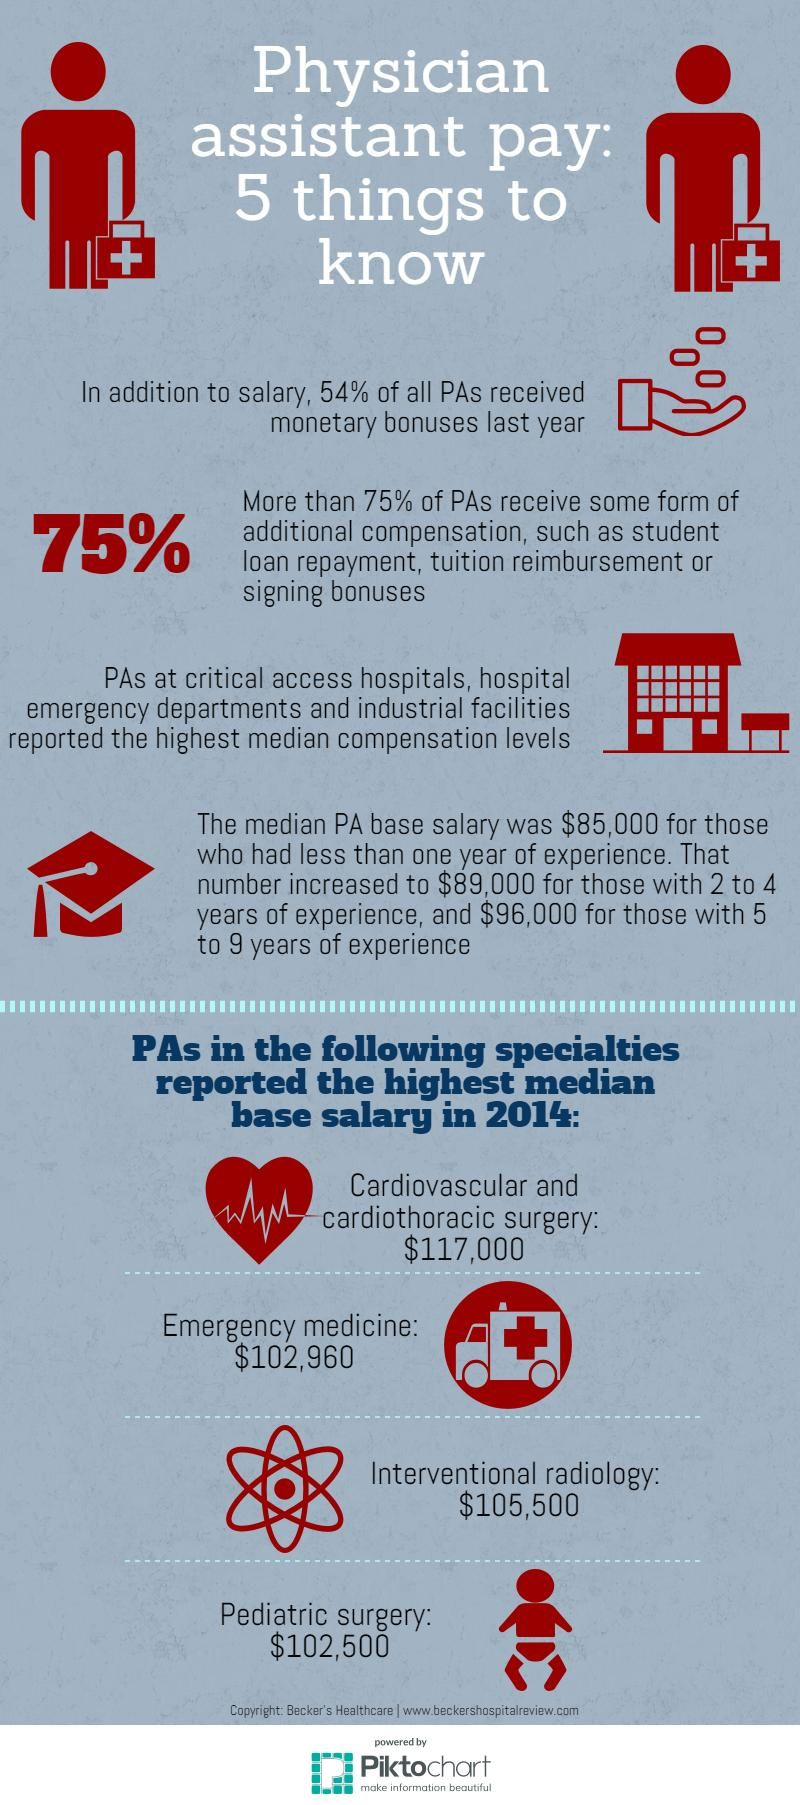 5 things to know about physician assistant pay http://tmiky.com ...